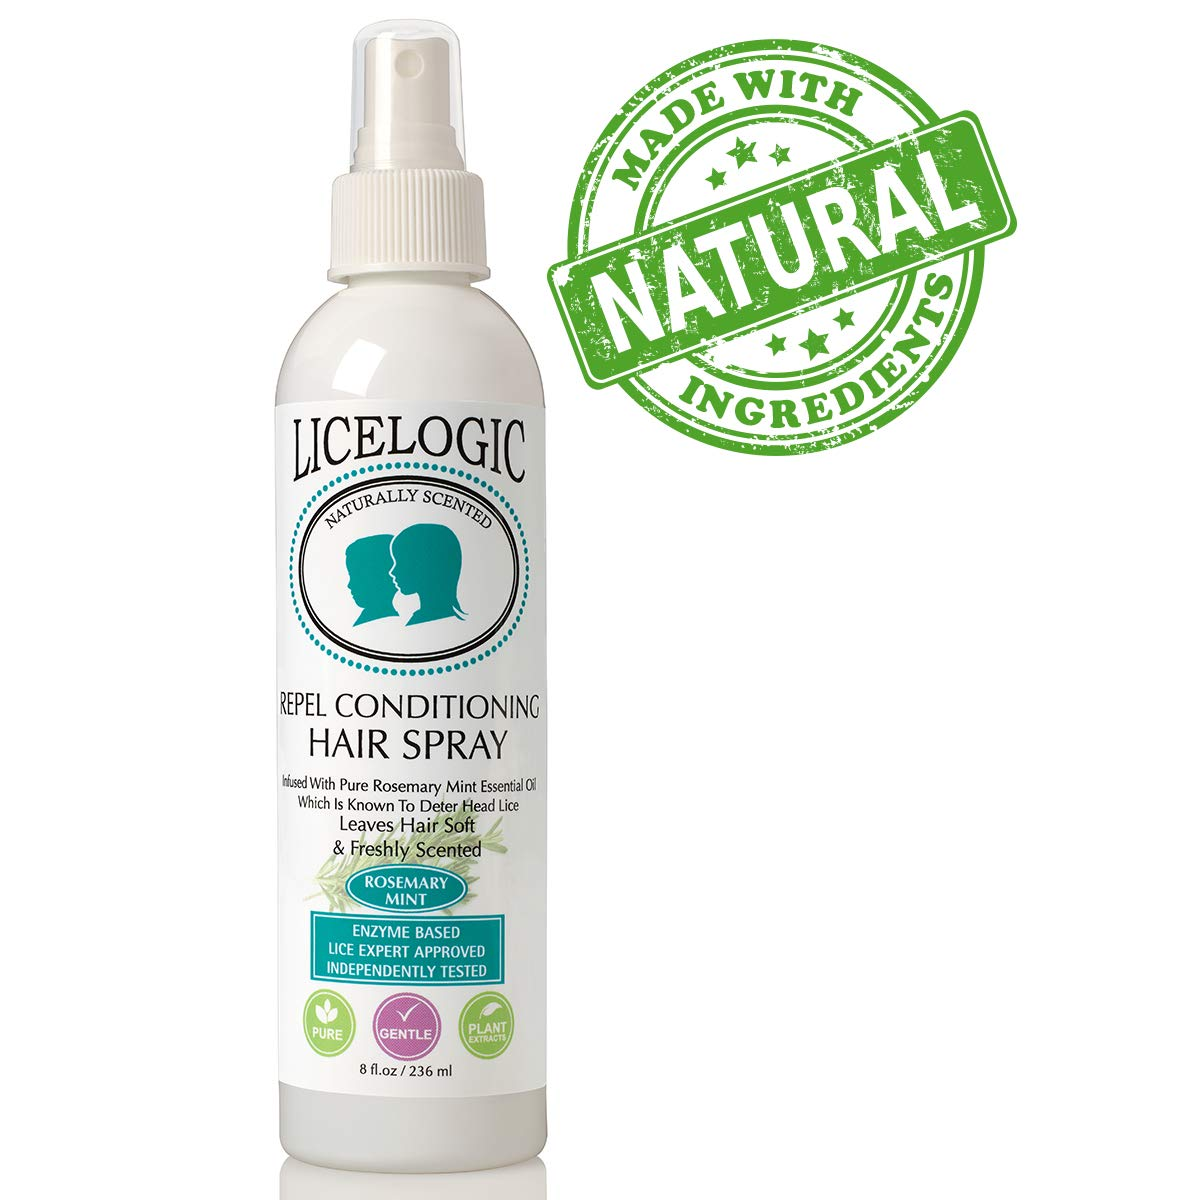 LiceLogic Natural Lice Prevention Hair Spray, Repels Super Lice, 8 oz - Mint -